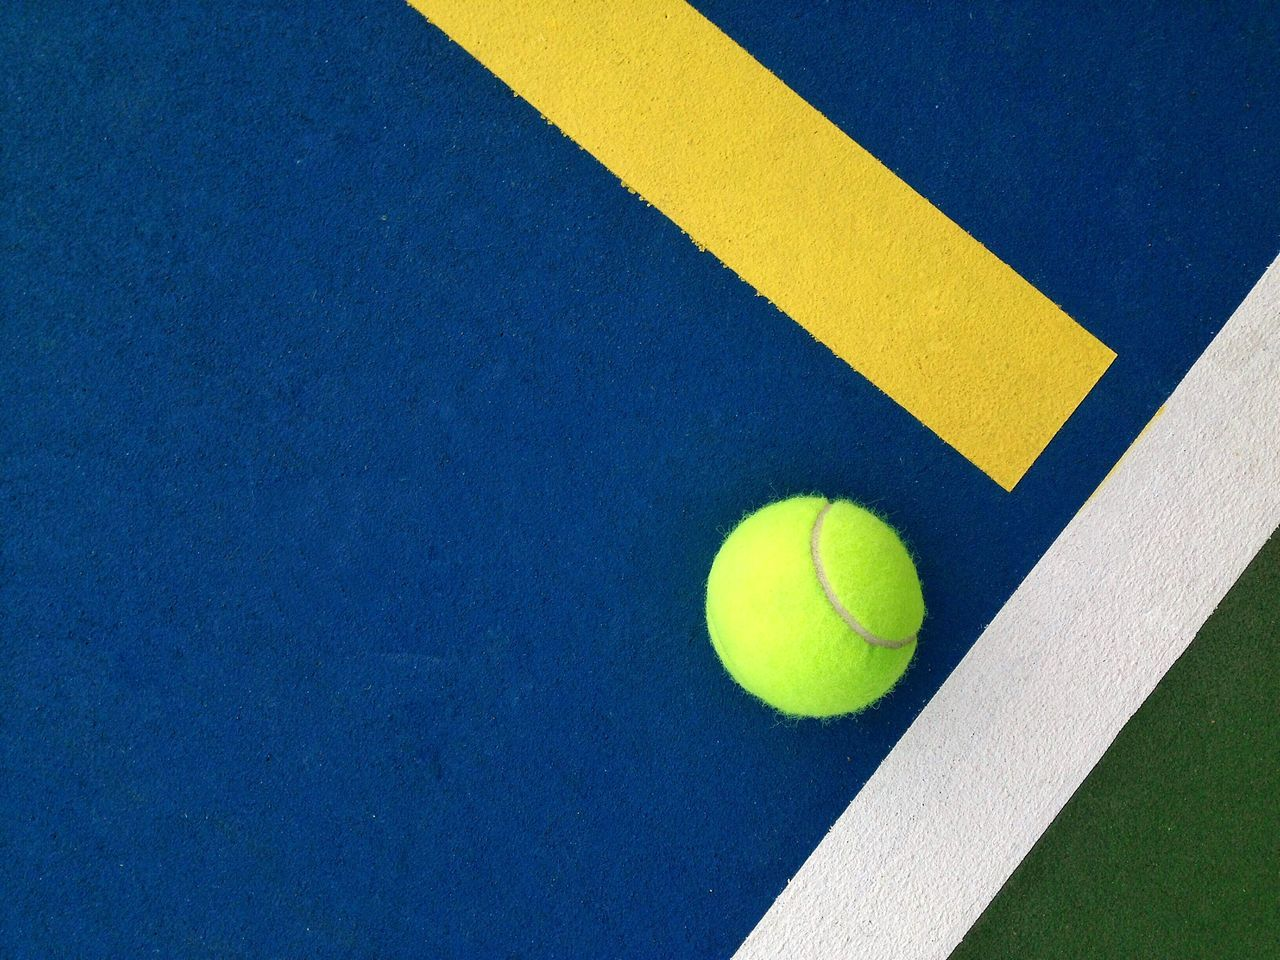 Learn & Shoot: Simplicity Tennis Tenniscourt Lines Geometric Shapes Geometric Tennisball Tennis 🎾 Sports Games Colors EyeEmbestshots EyeEm Best Shots EyeEm Best Shot Eyeem Best Shot t EyeEm Best Shots A winner of the EyeEm Learn & Shoot: Simplicity mission challenge! Thanks Eyem Winner EyeEm Winner Winners Pattern Patterns Simplicity Color Fine Art Photography A Bird's Eye View The Color Of Sport Minimalist Architecture Market Bestsellers 2017